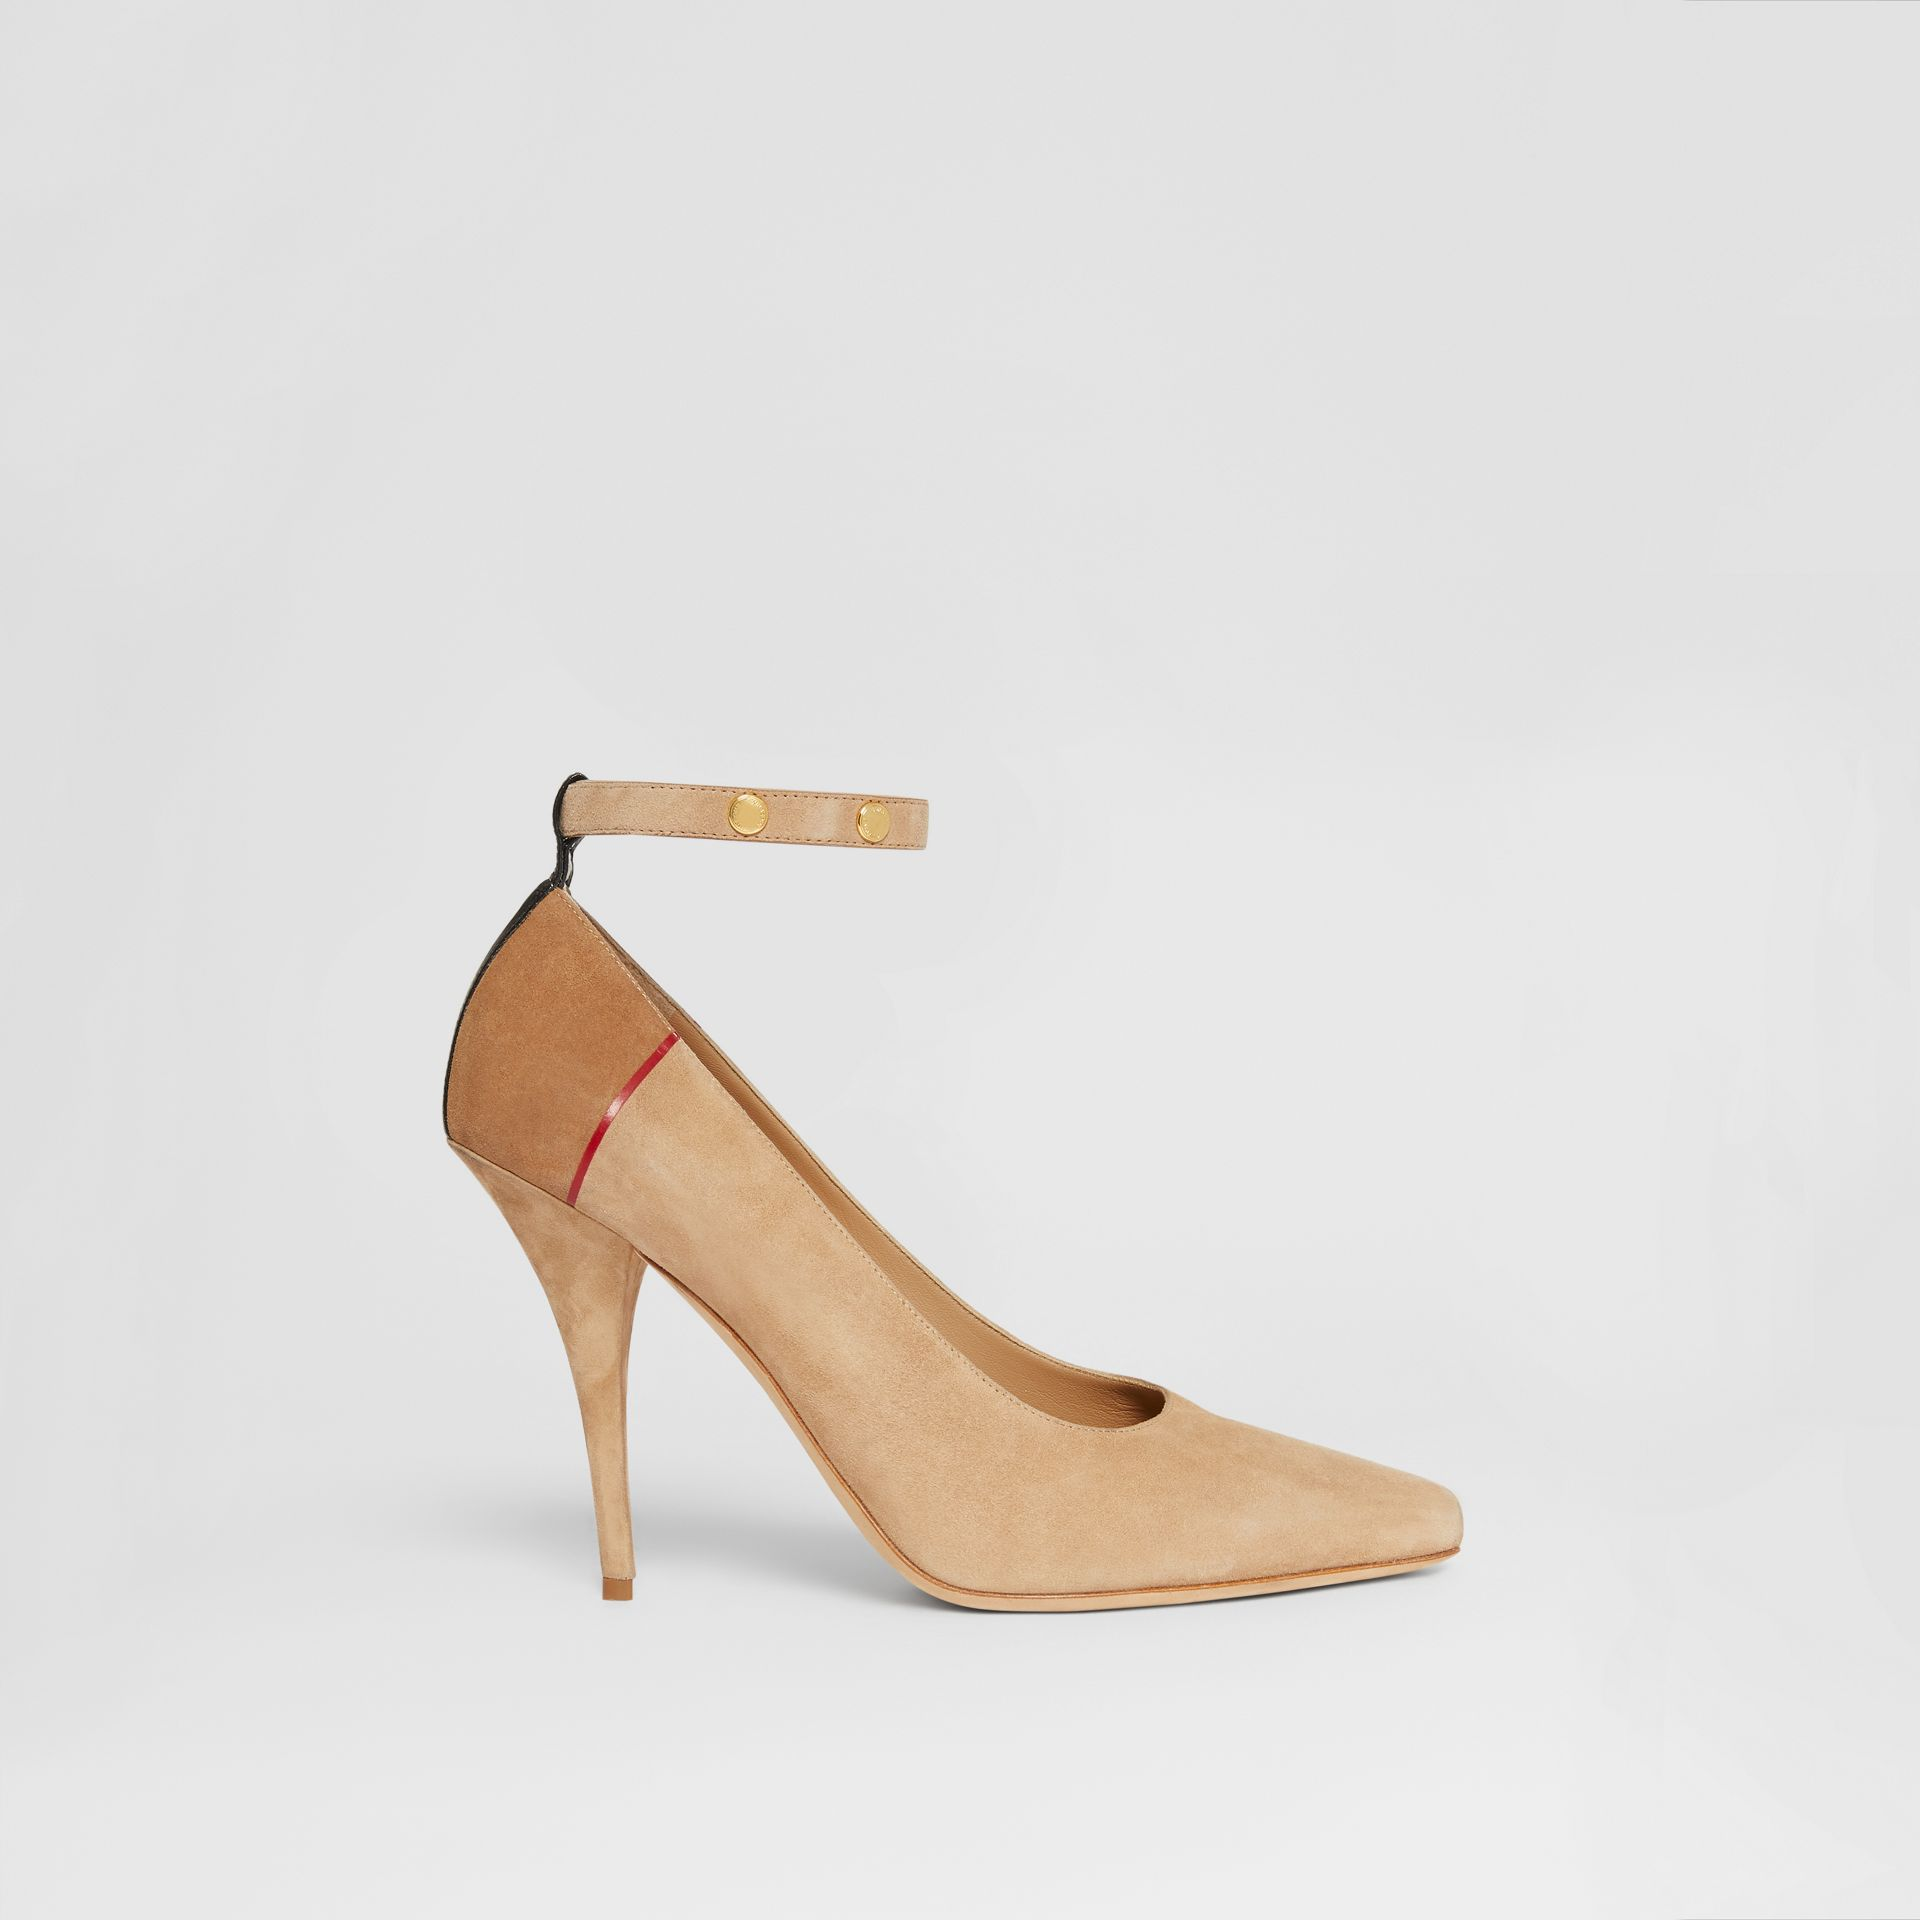 Triple Stud Stripe Detail Suede Point-toe Pumps in Tawny - Women | Burberry Canada - gallery image 5